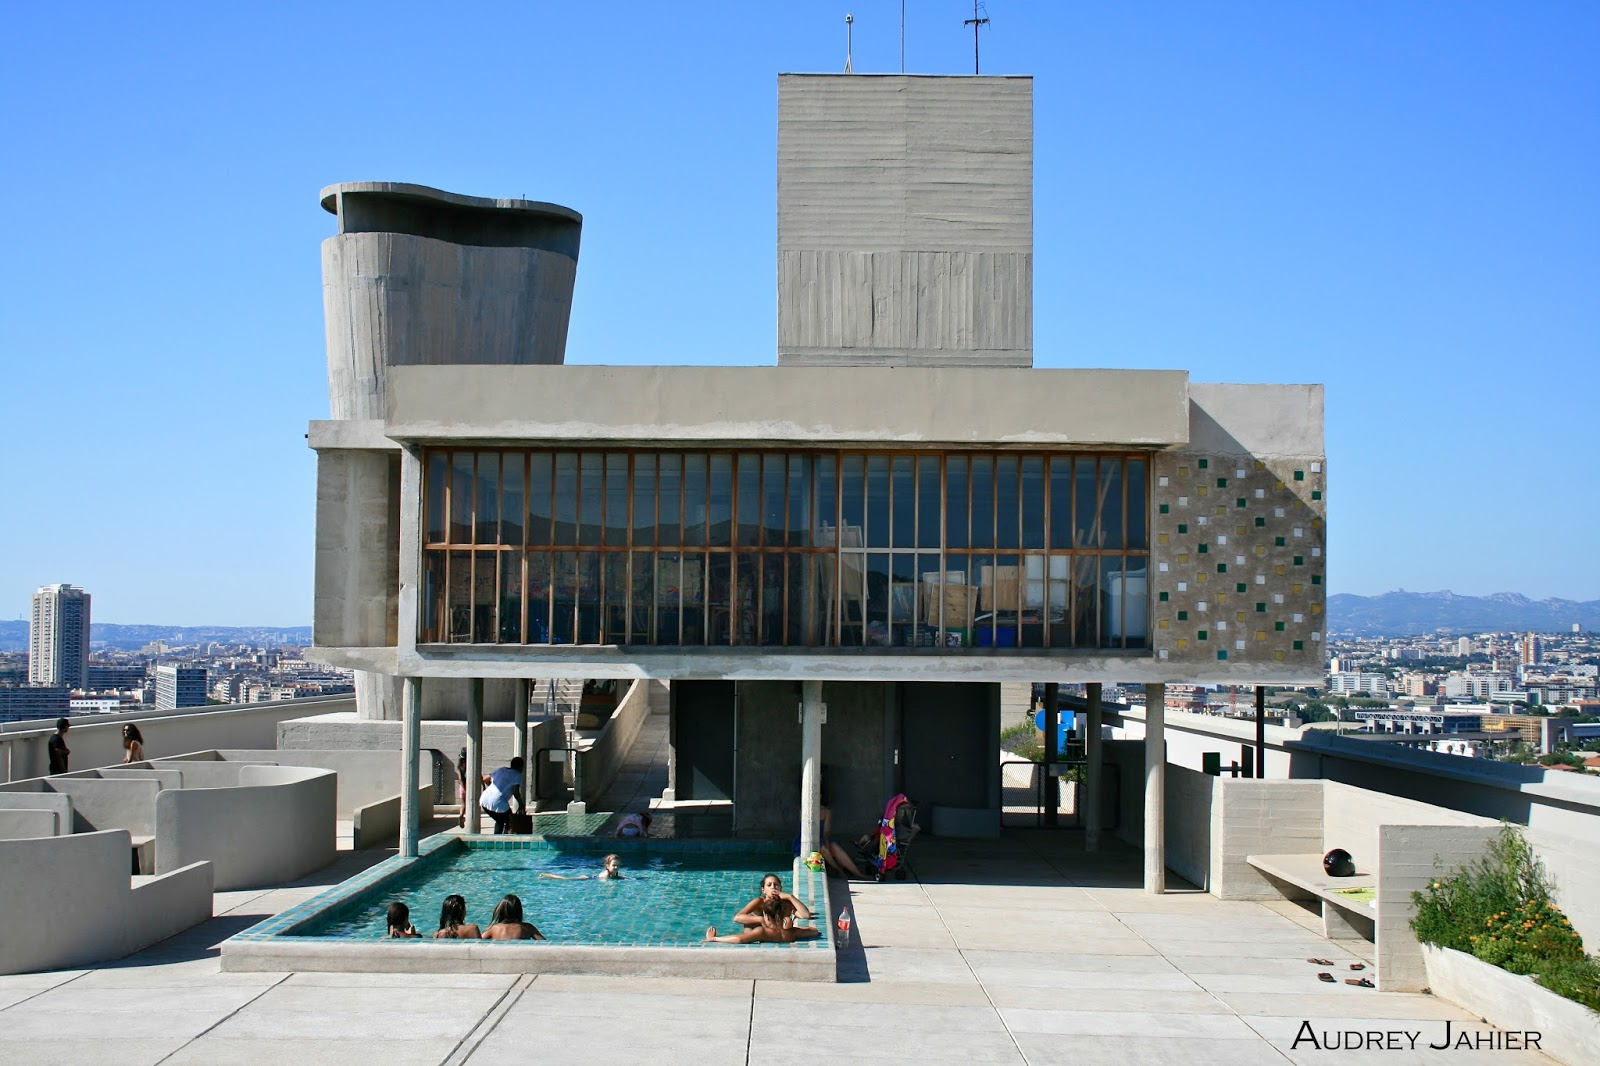 cite-radieuse-le-corbusier-photographie-architecture-marseille-france